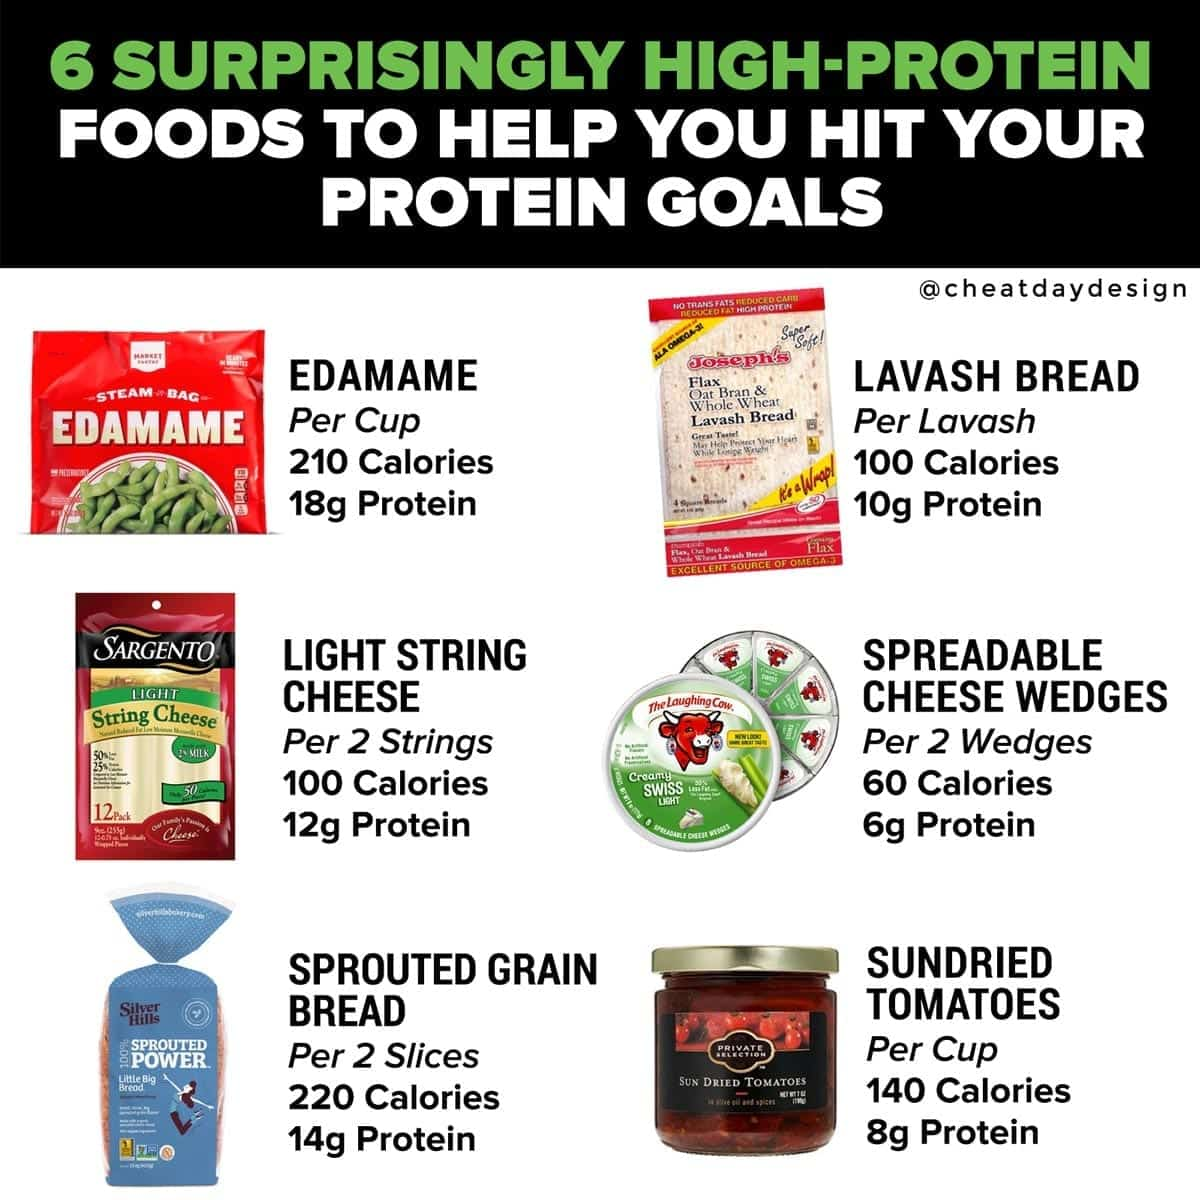 Surprisingly high-protein snacks